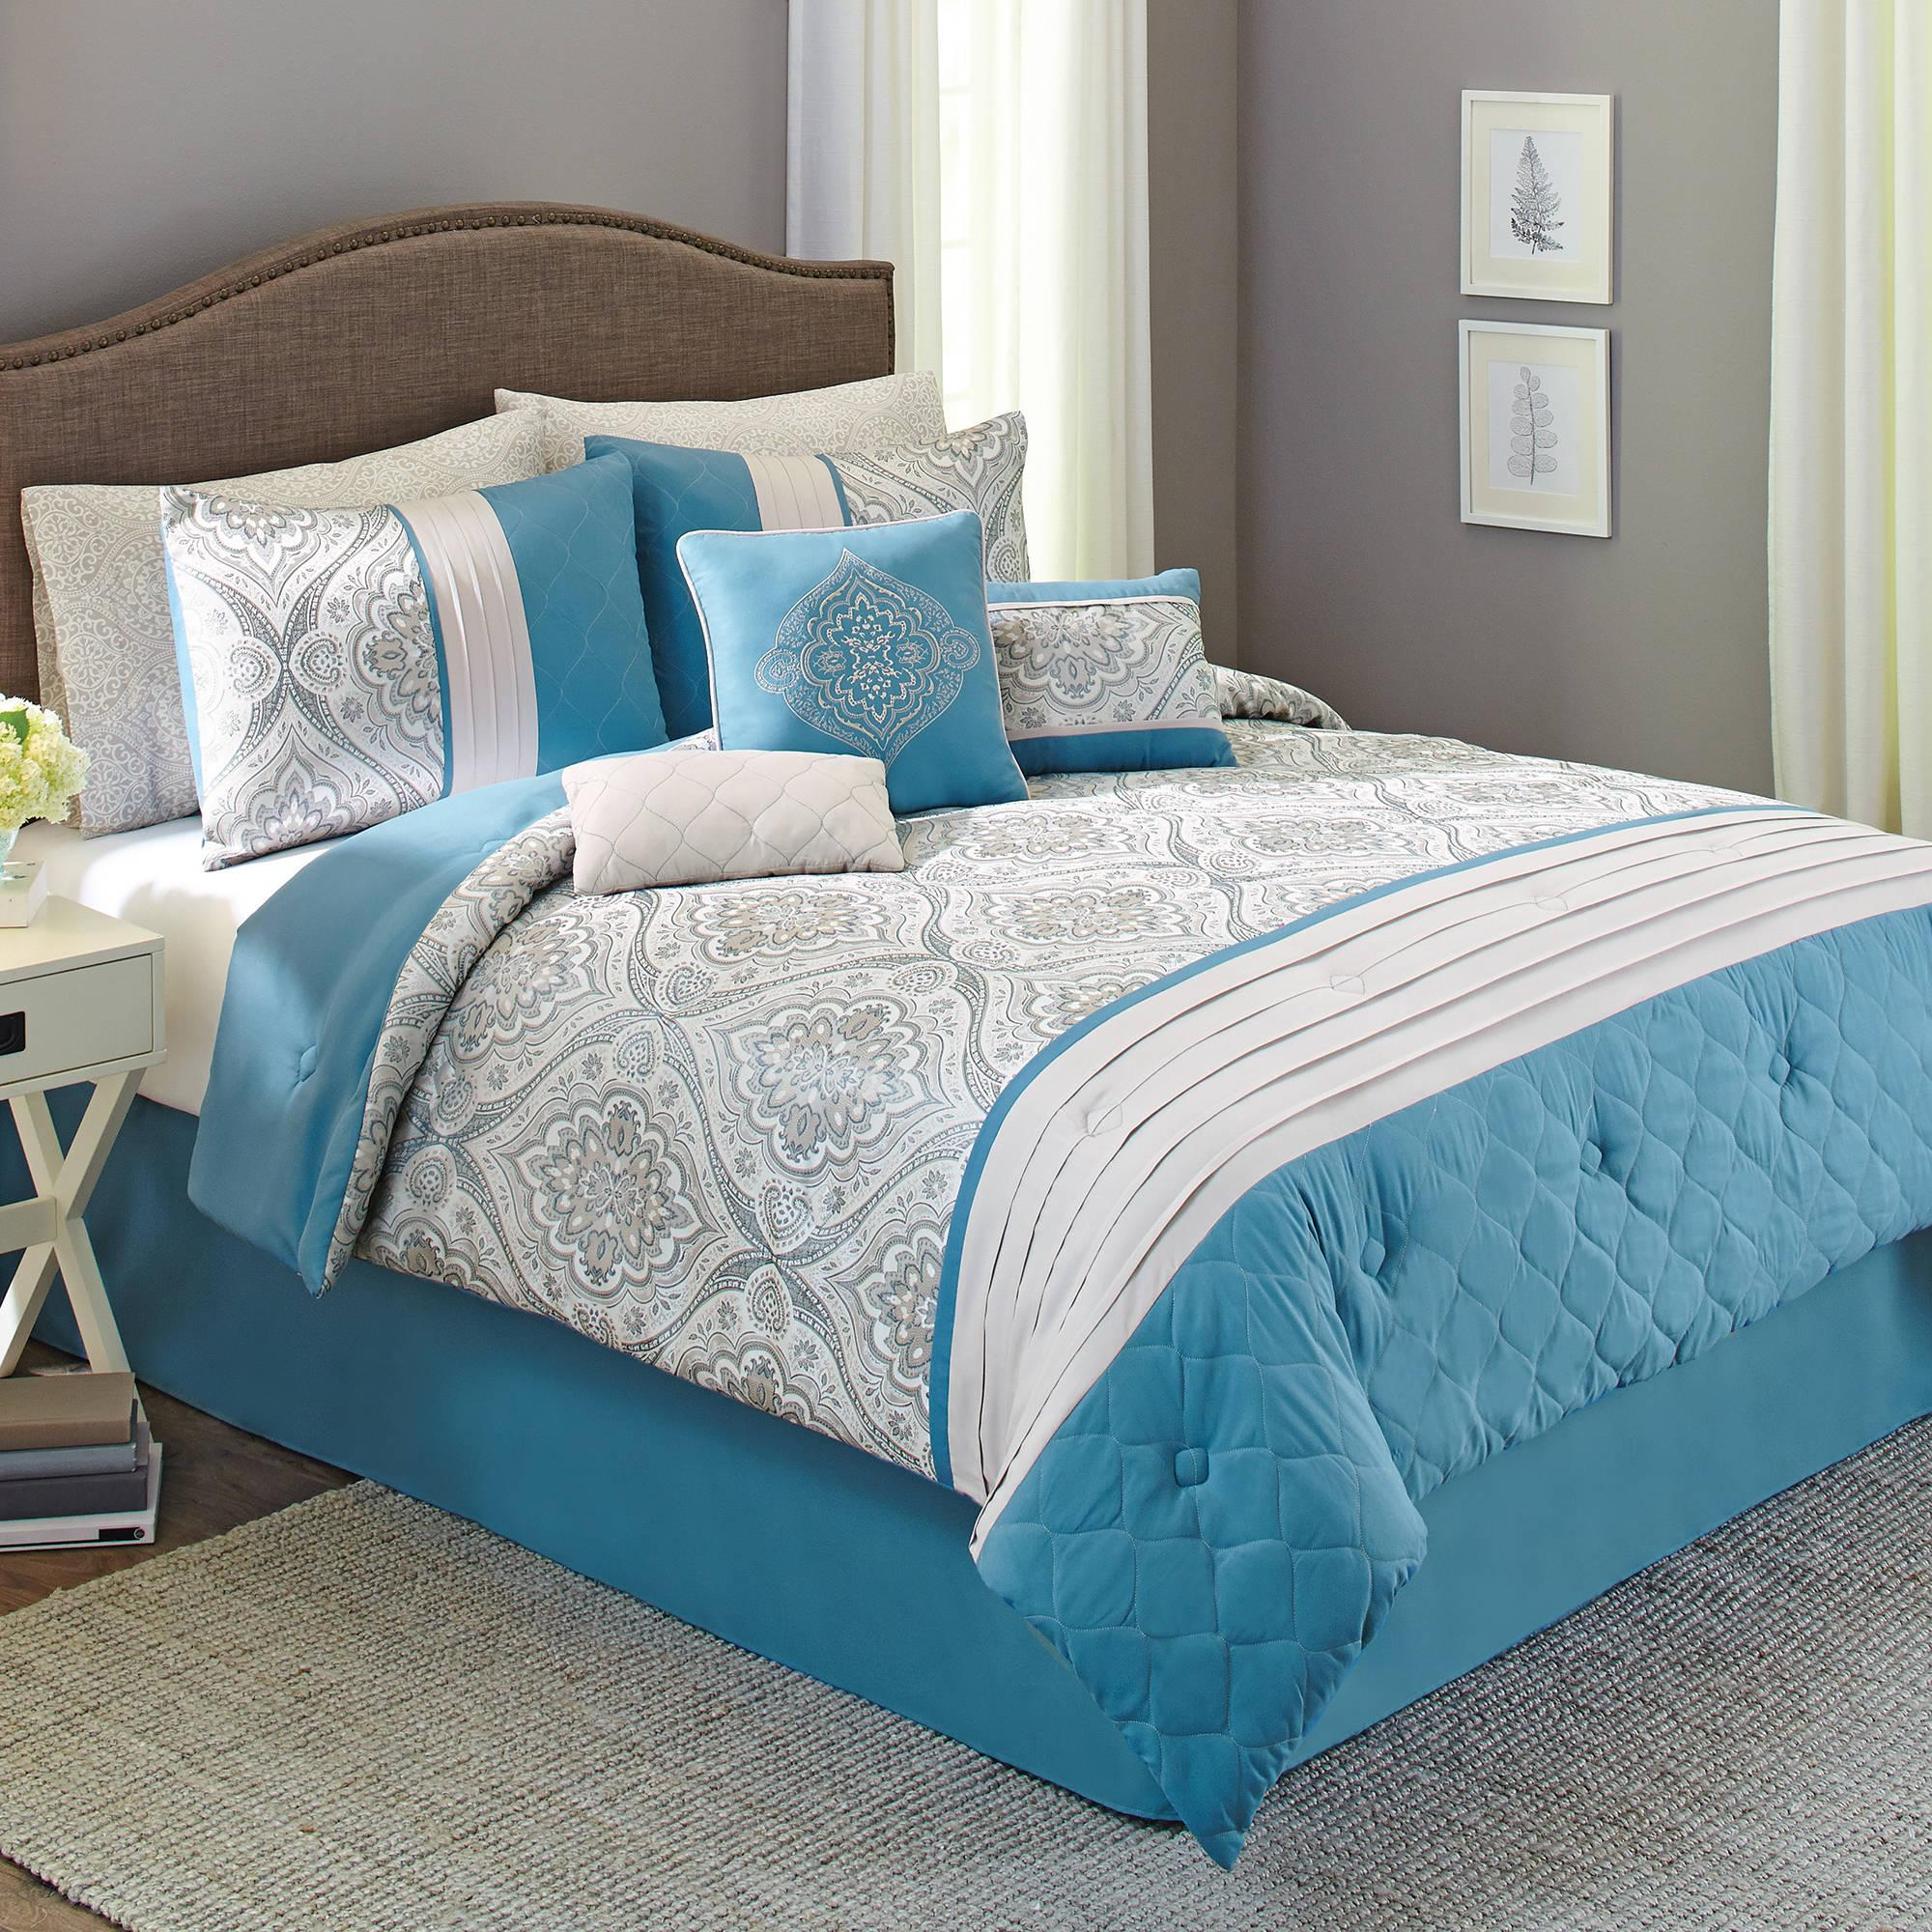 Merveilleux Stylish White Blue Better Homes And Garden Comforter Sets With Grey Rug And  Wall